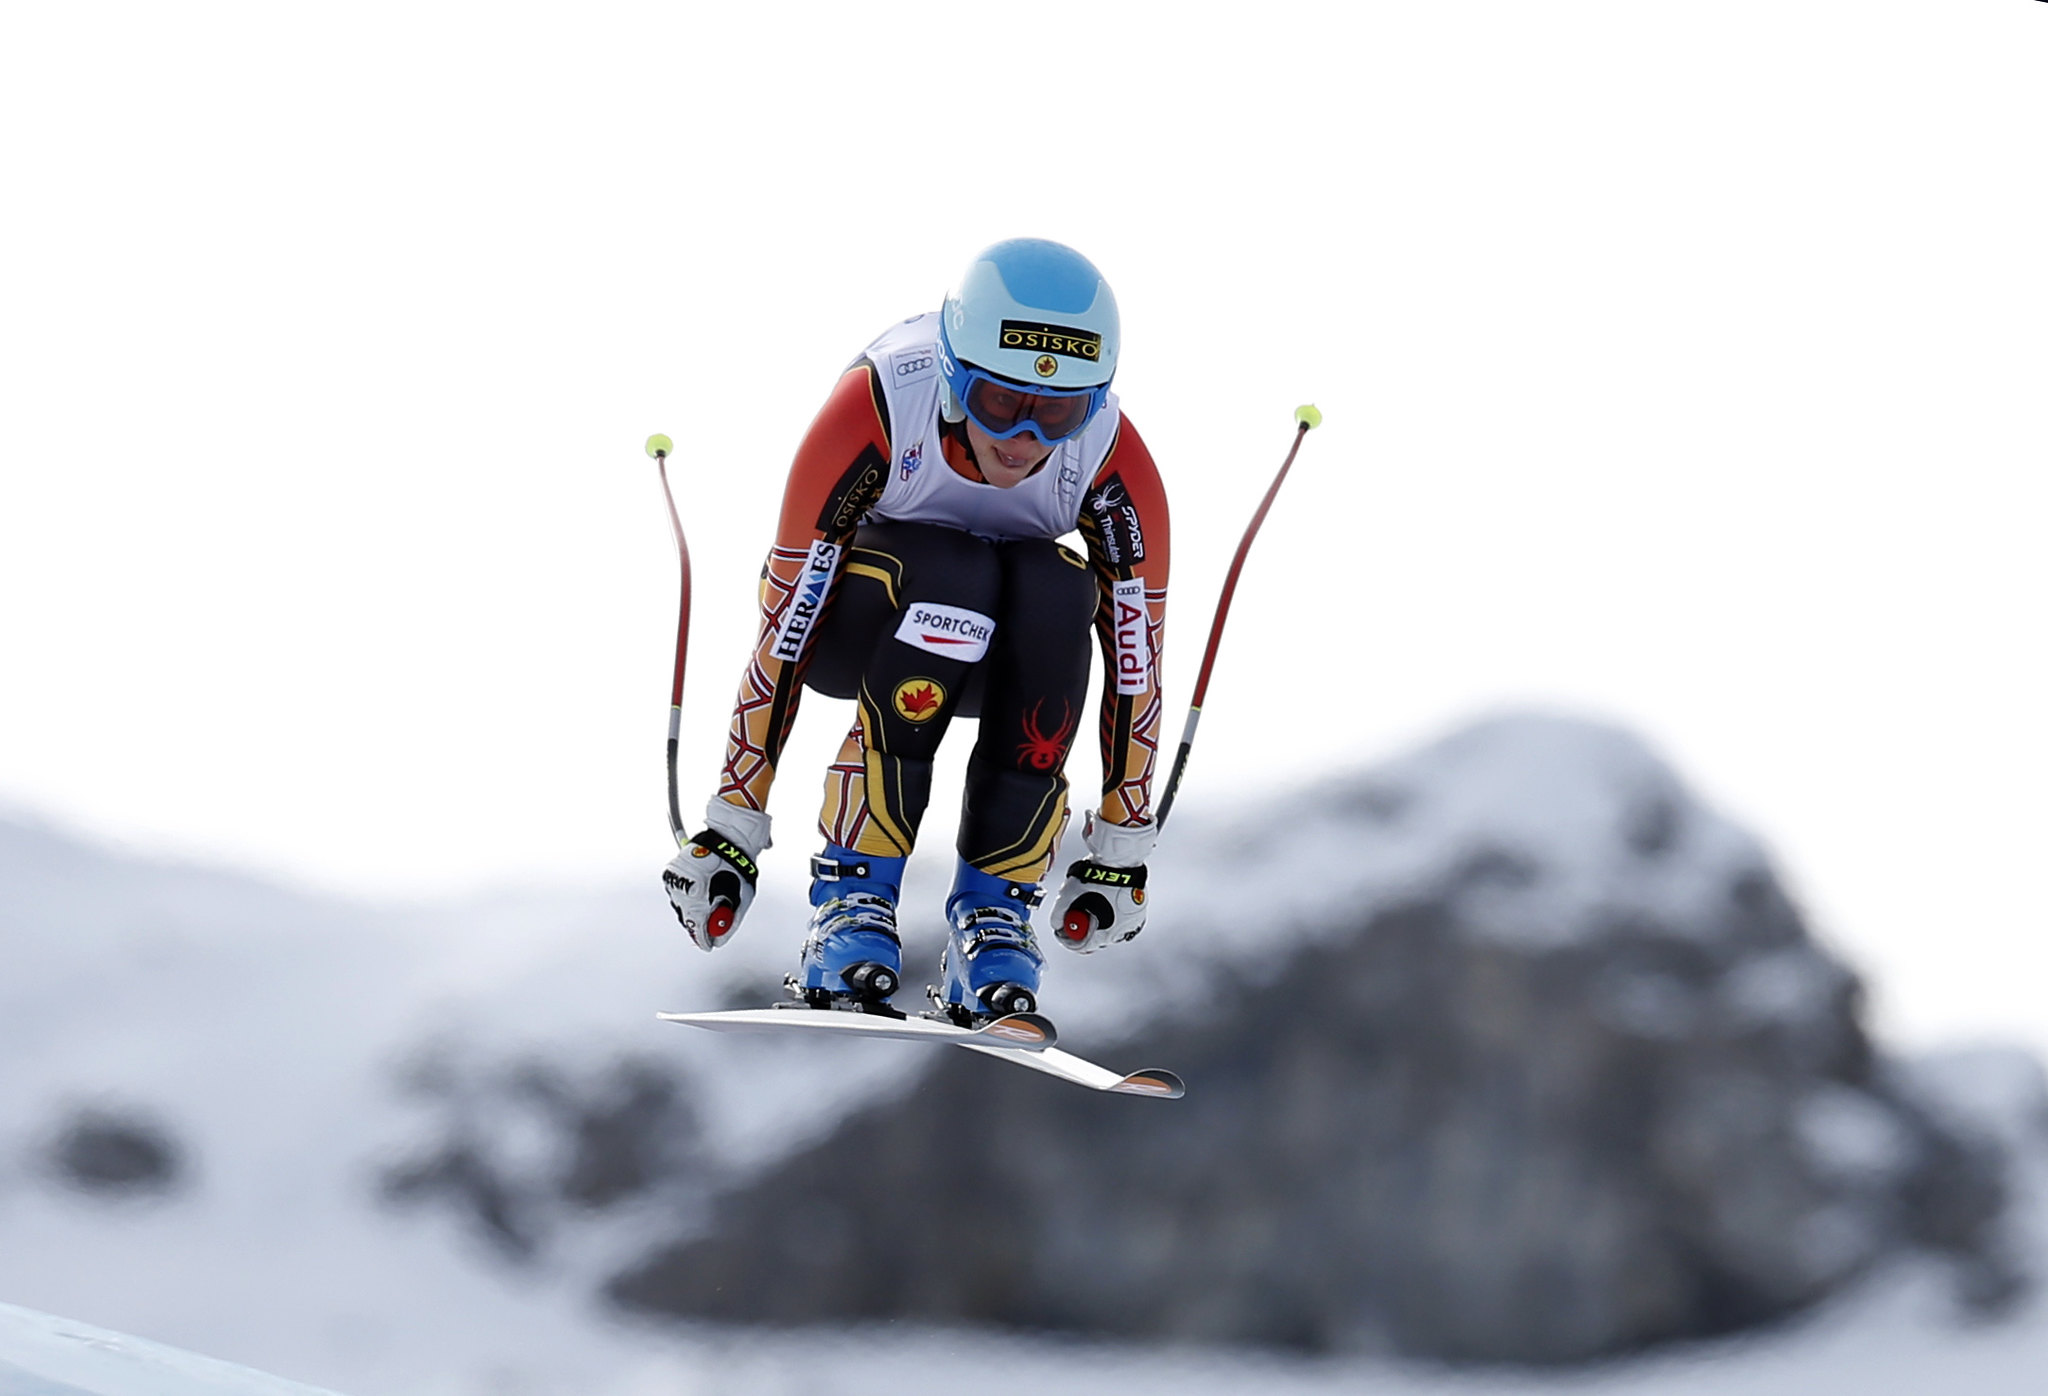 Gagnon takes flight during the downhill in Altenmarkt, AUT